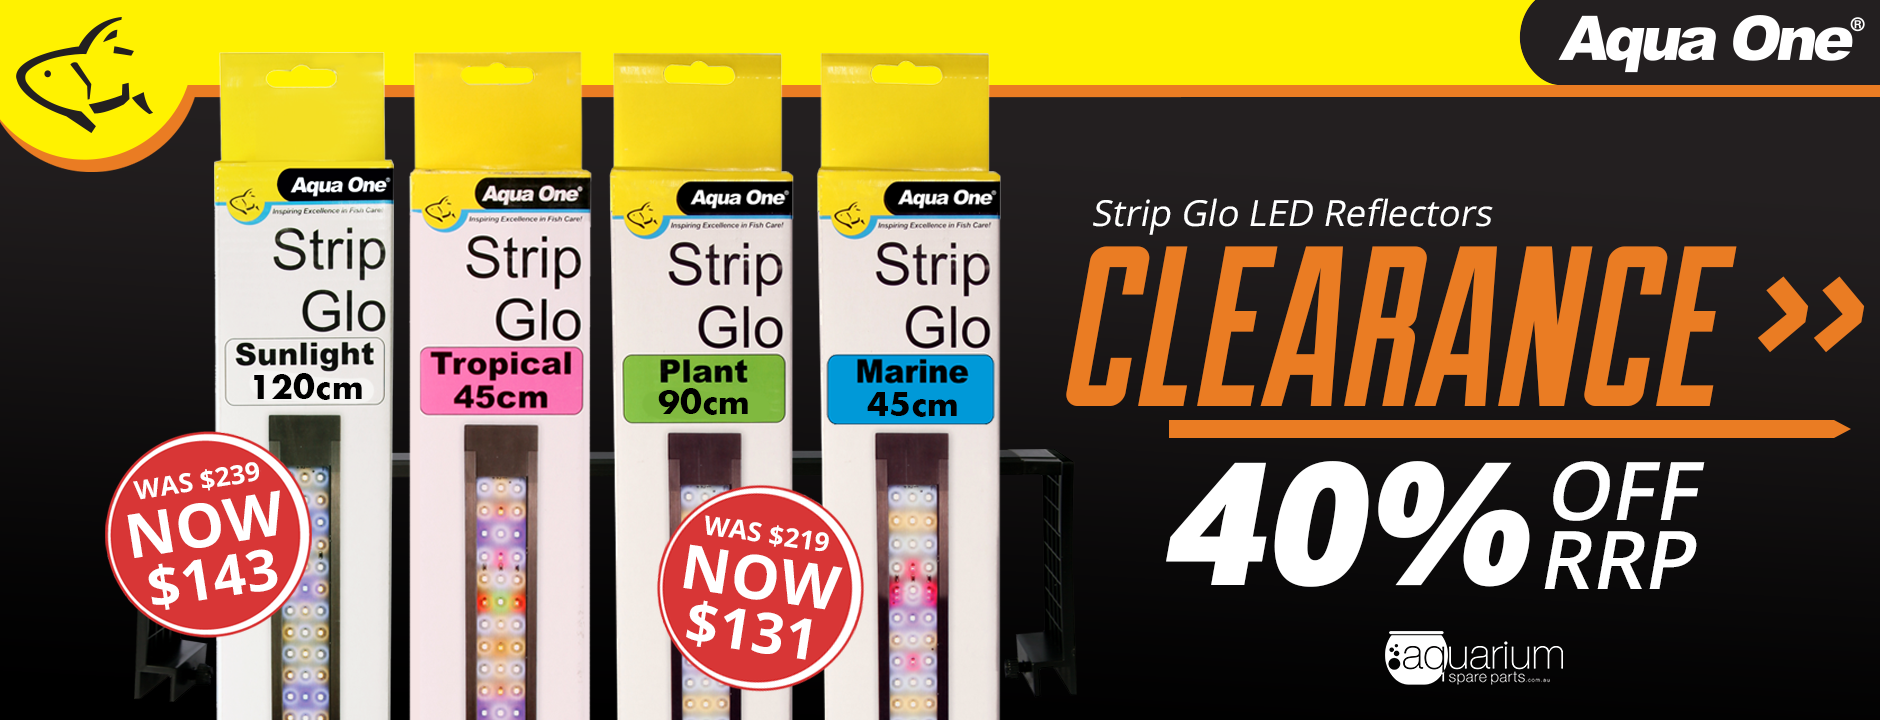 stripglo-clearance-banner.png